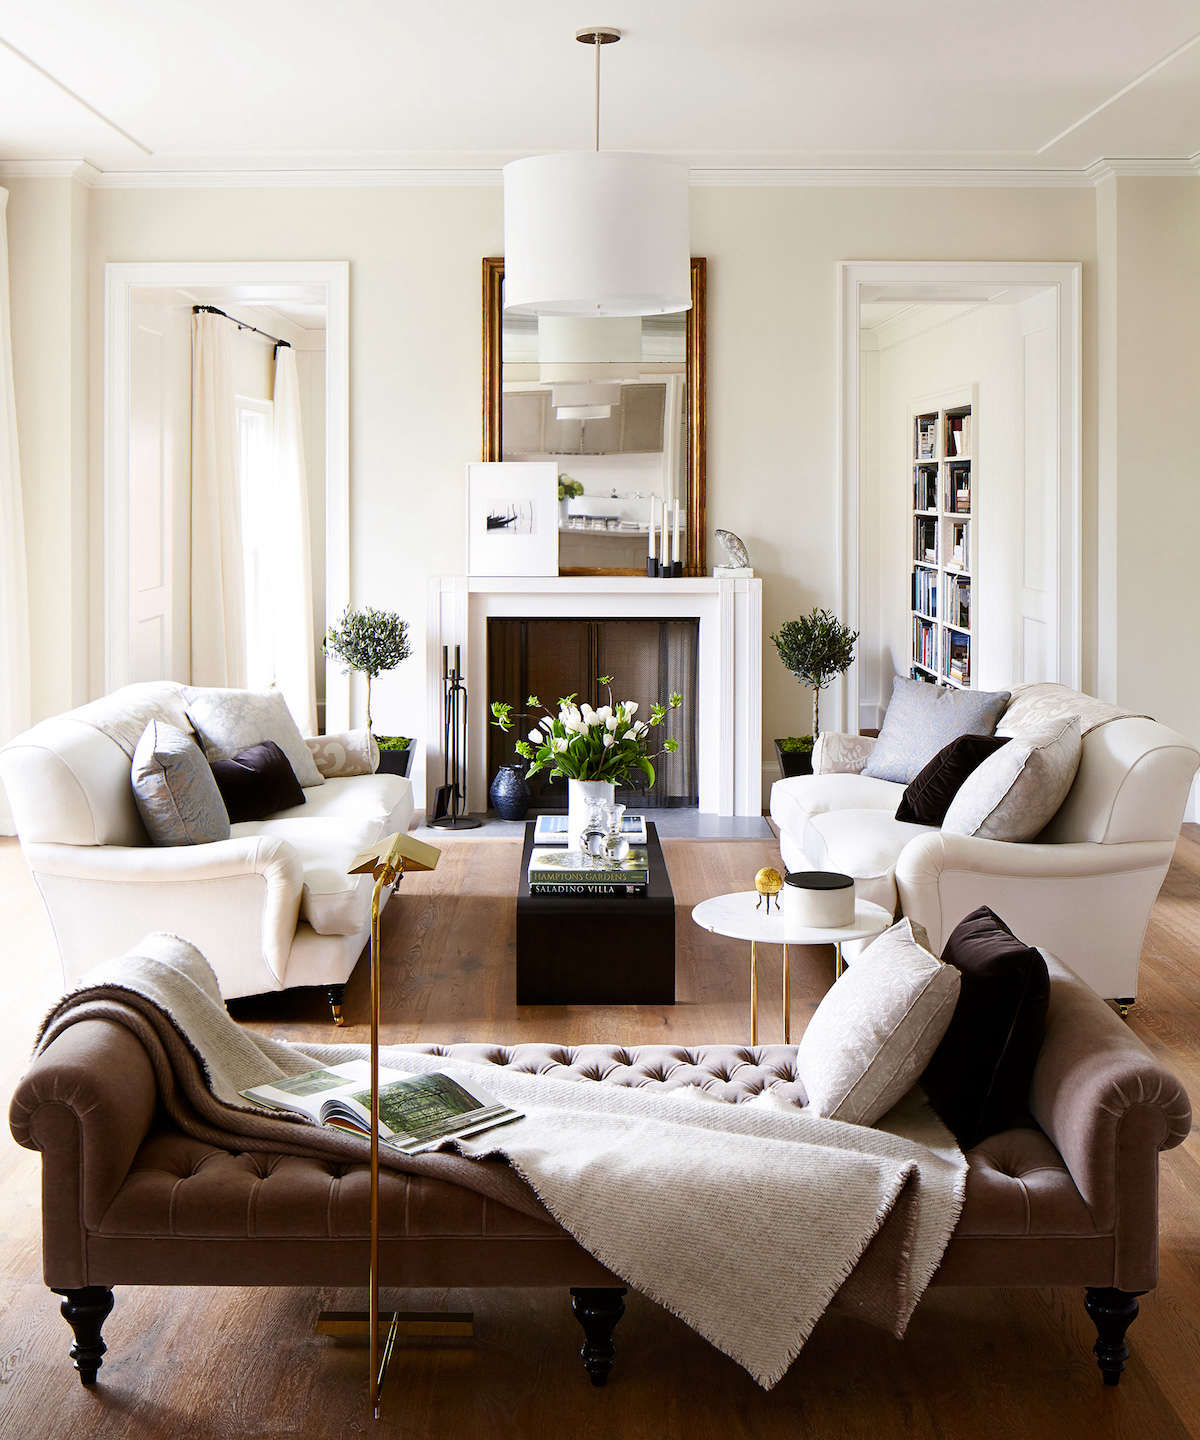 White Cream and Brown Living Room